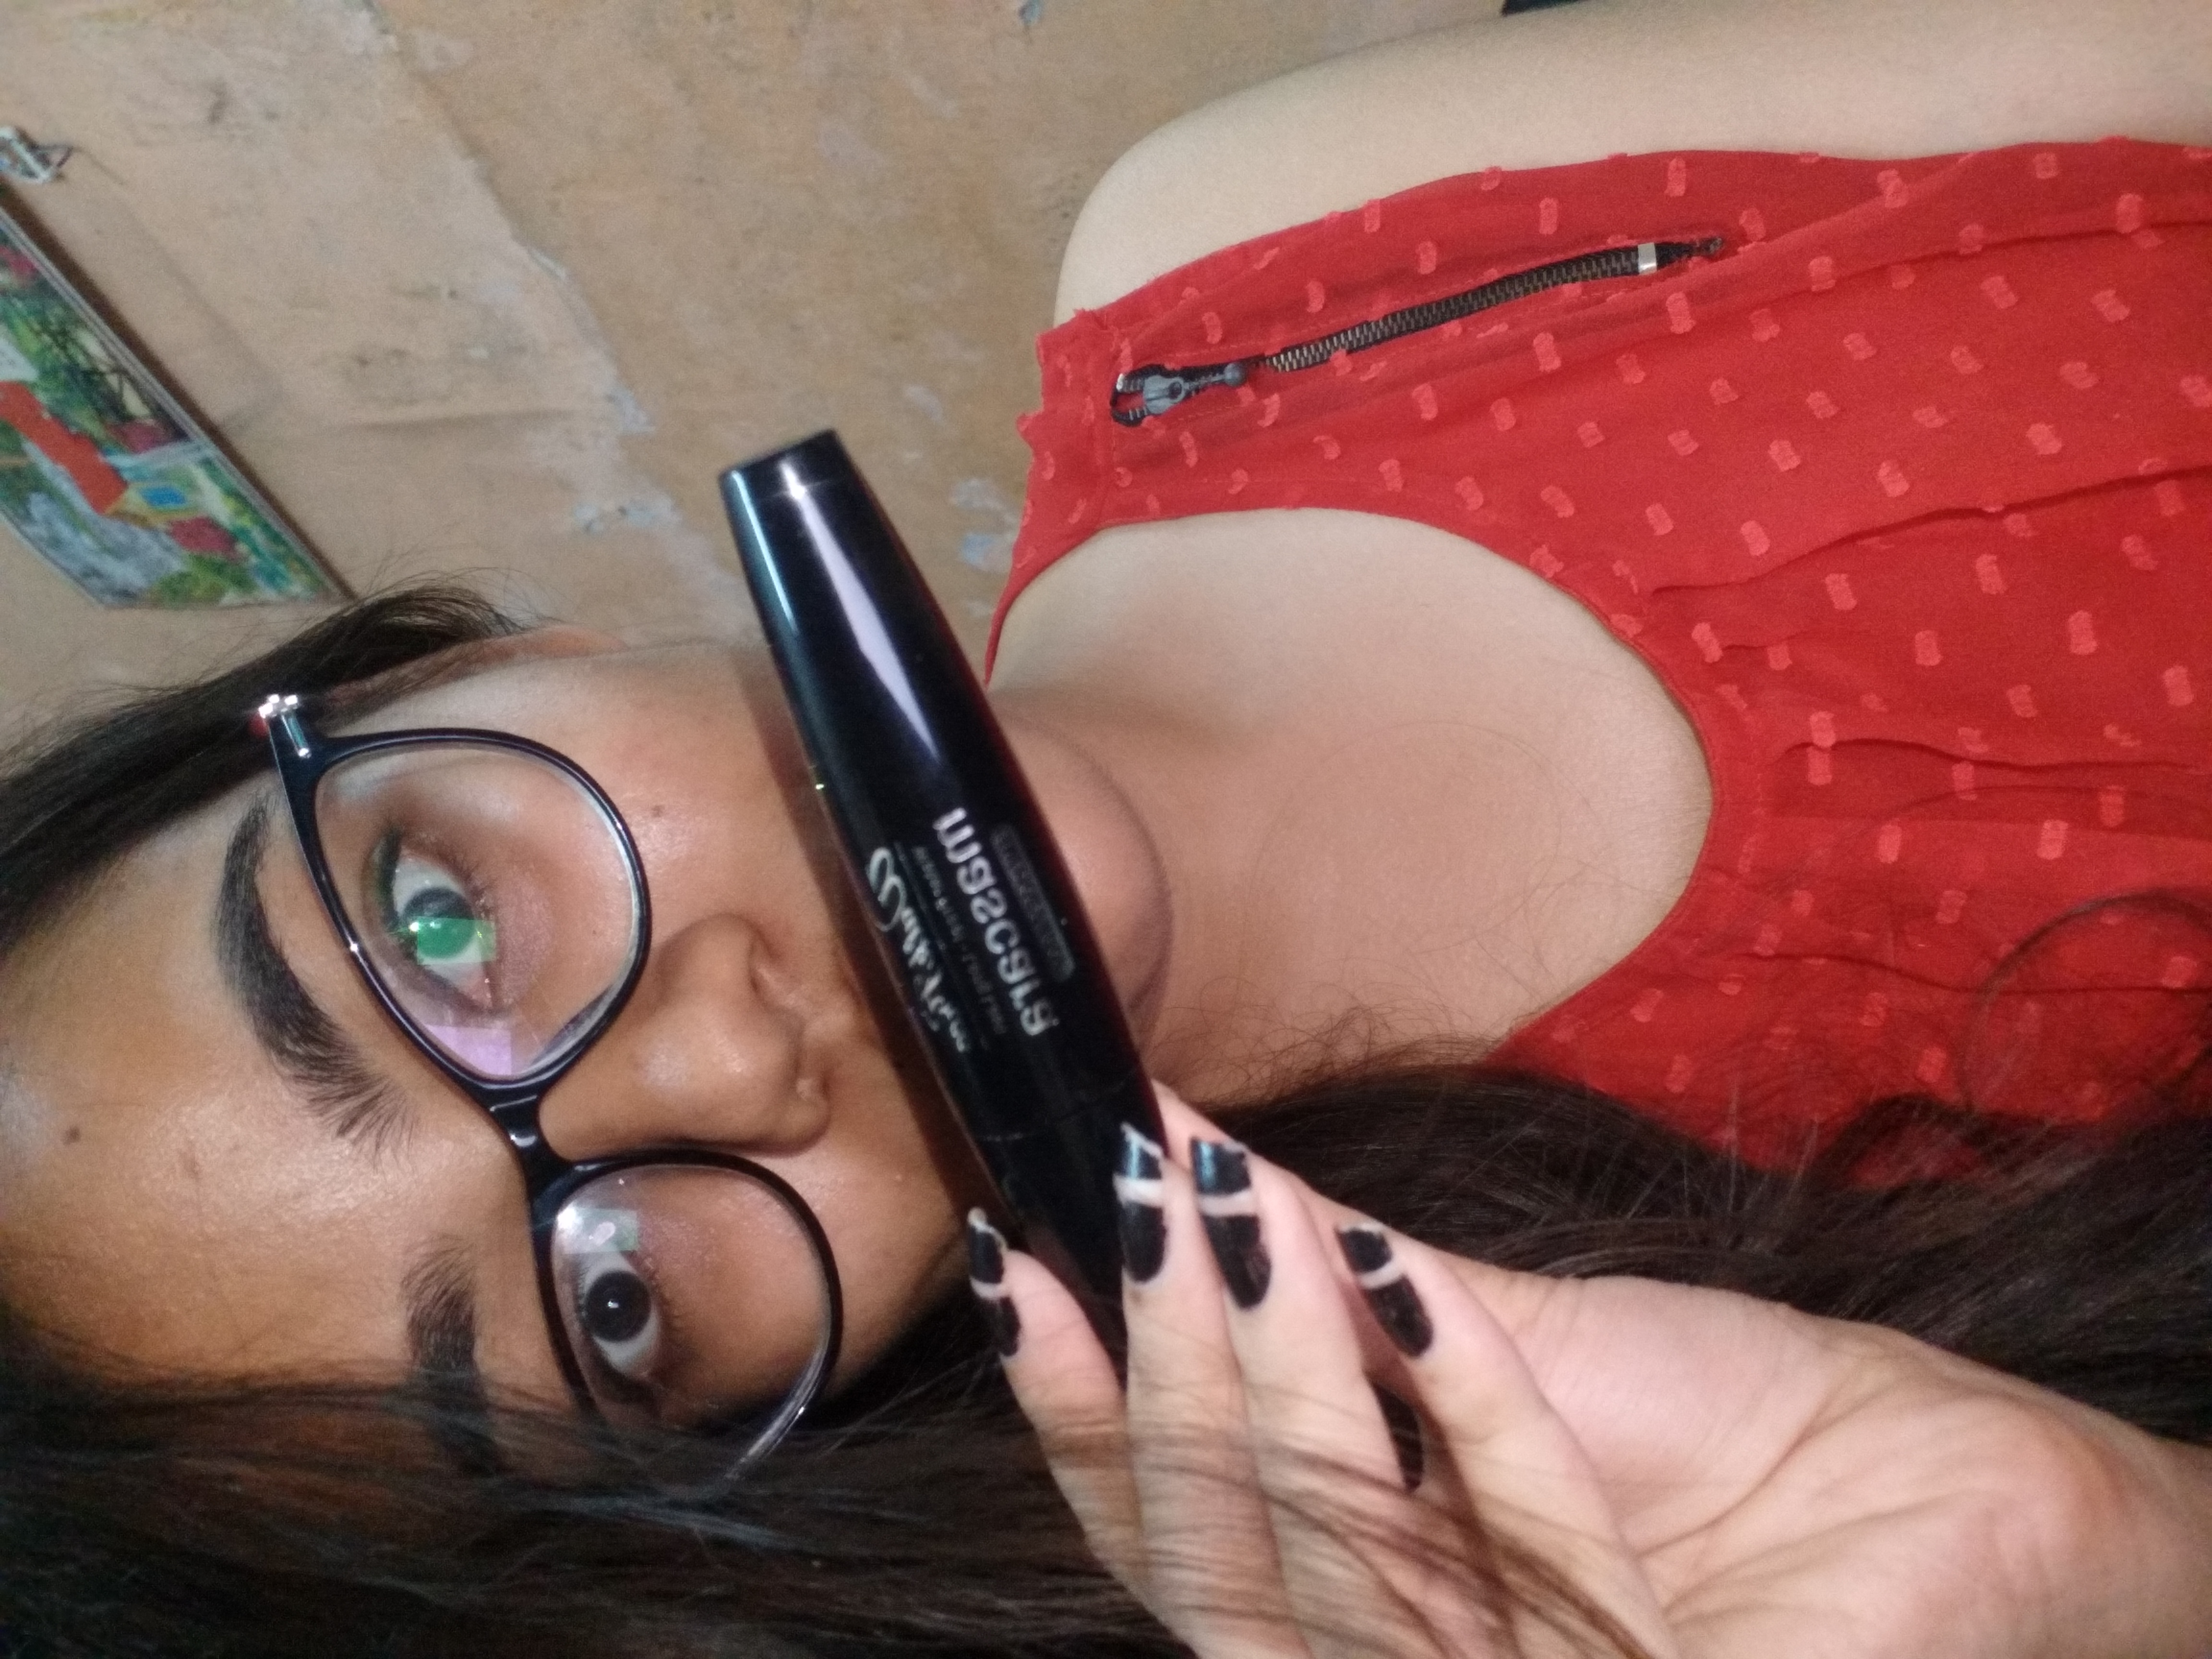 Blue Heaven Walk Free Mascara-Apt for daily use-By khushb00.pal-2